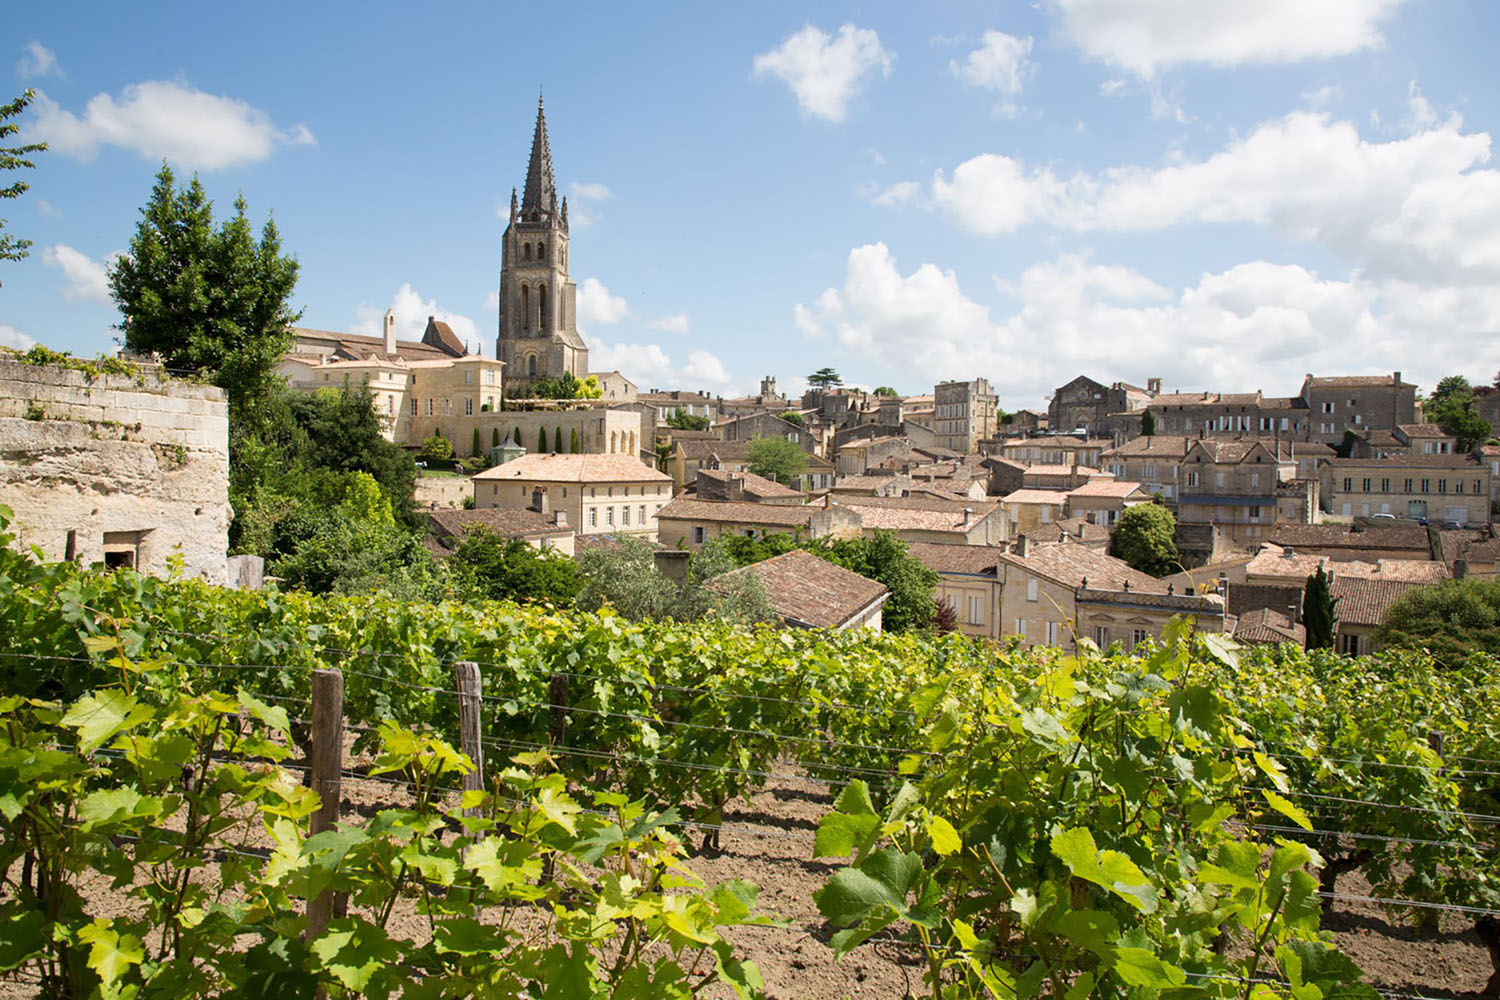 The landscape of Saint Emilion village in the Bordeaux region in France